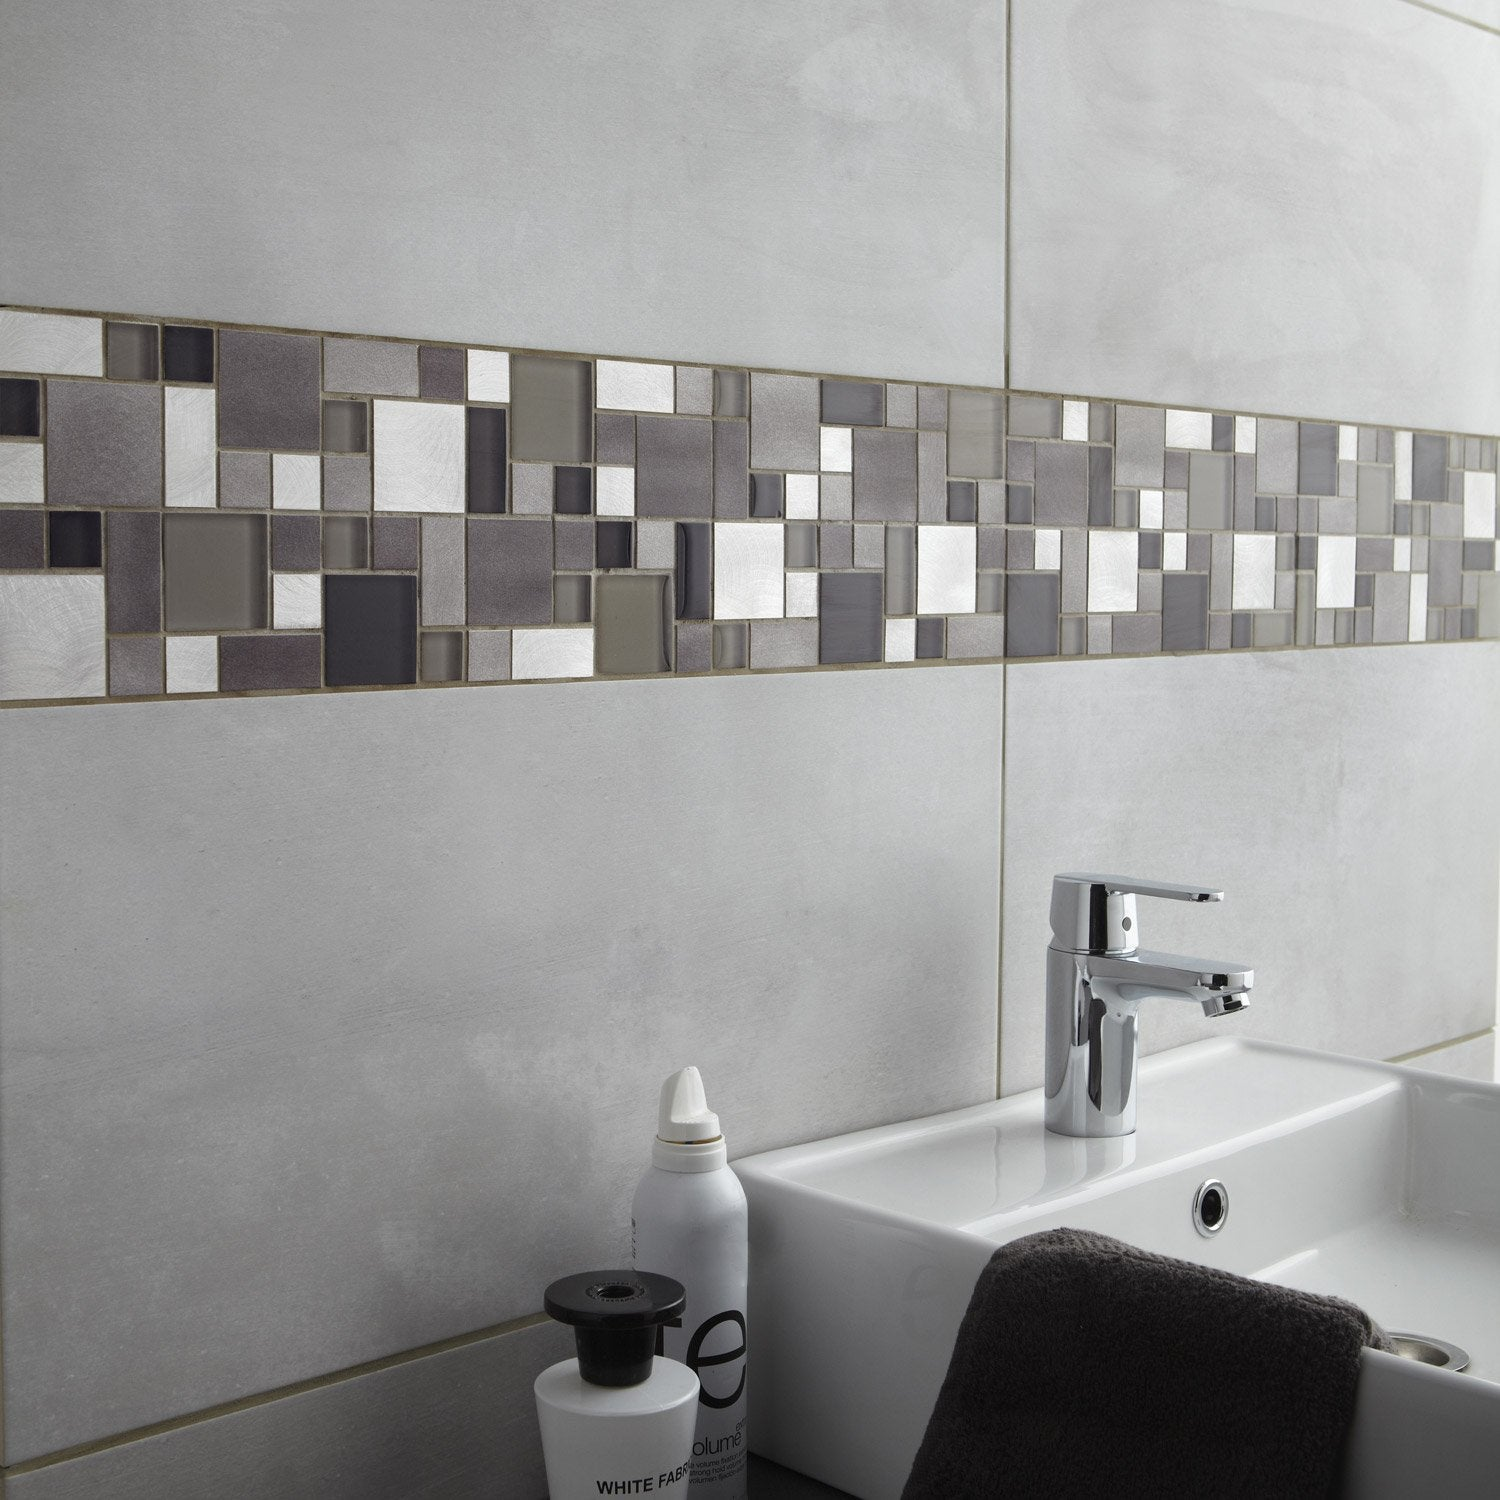 Fa ence mur gris clair denver x cm leroy merlin for Carrelage salle de bain noir brillant